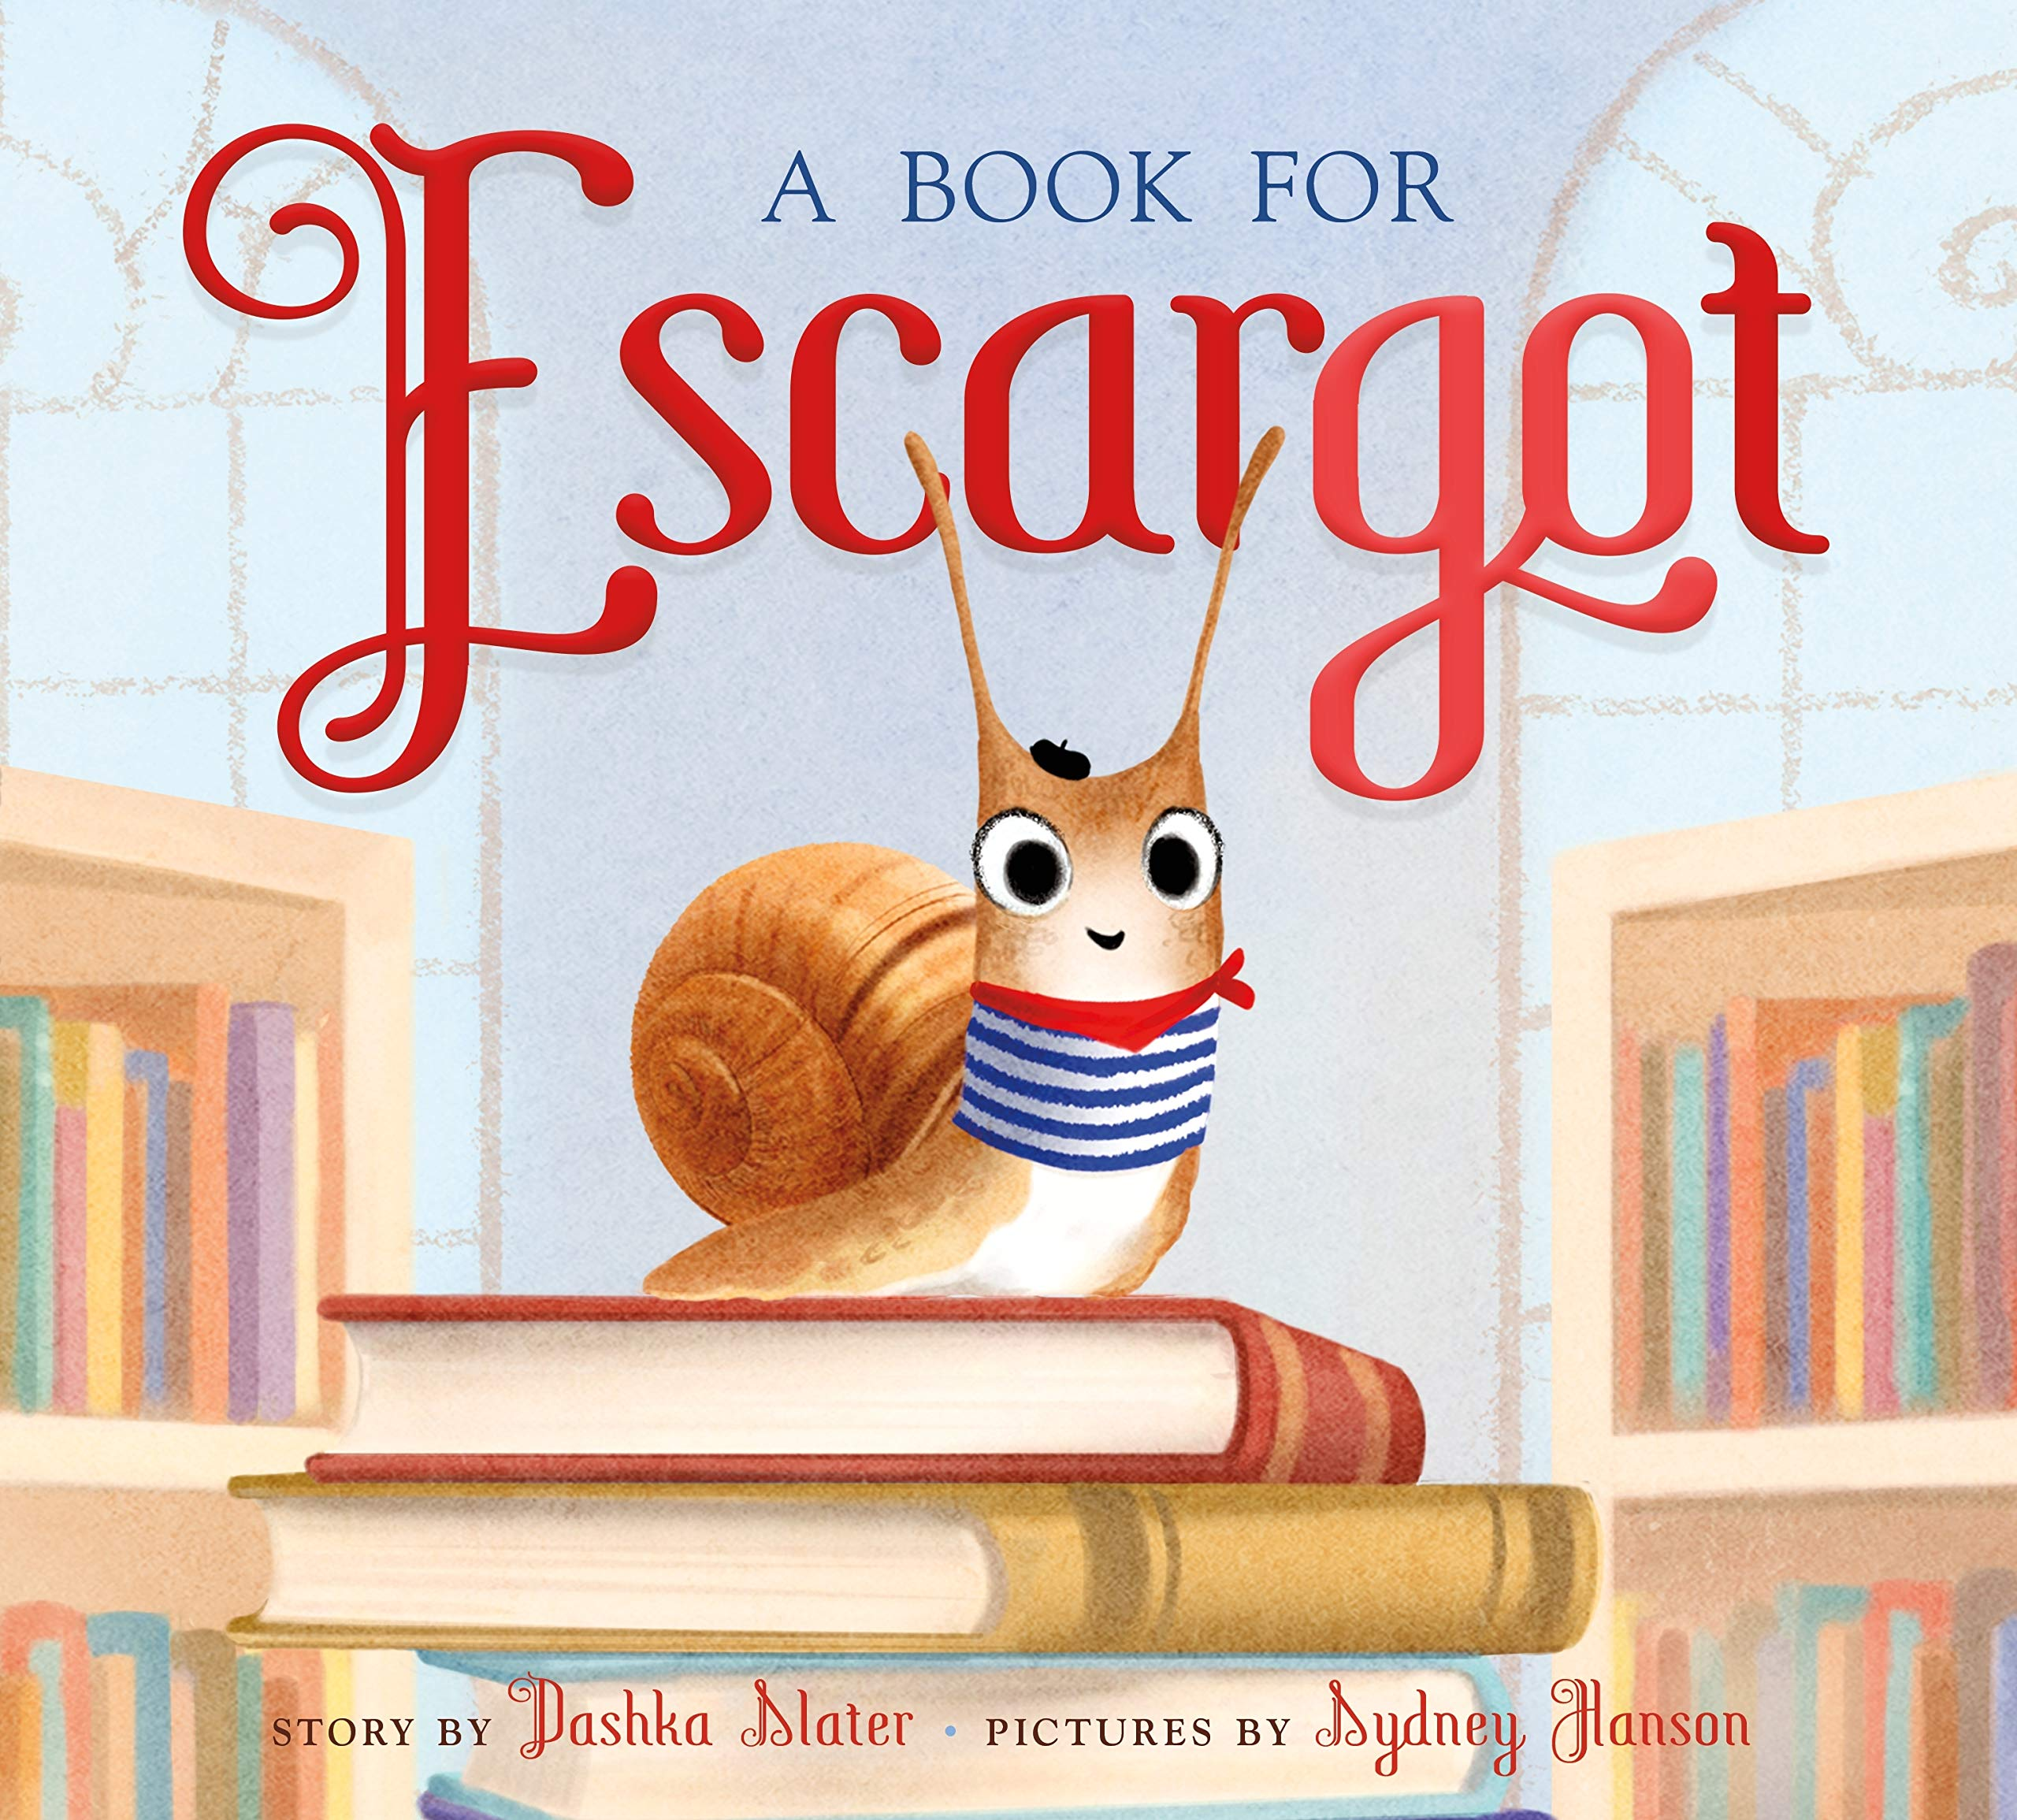 celebrate-picture-books-picture-book-review-a-book-for-escargot-cover